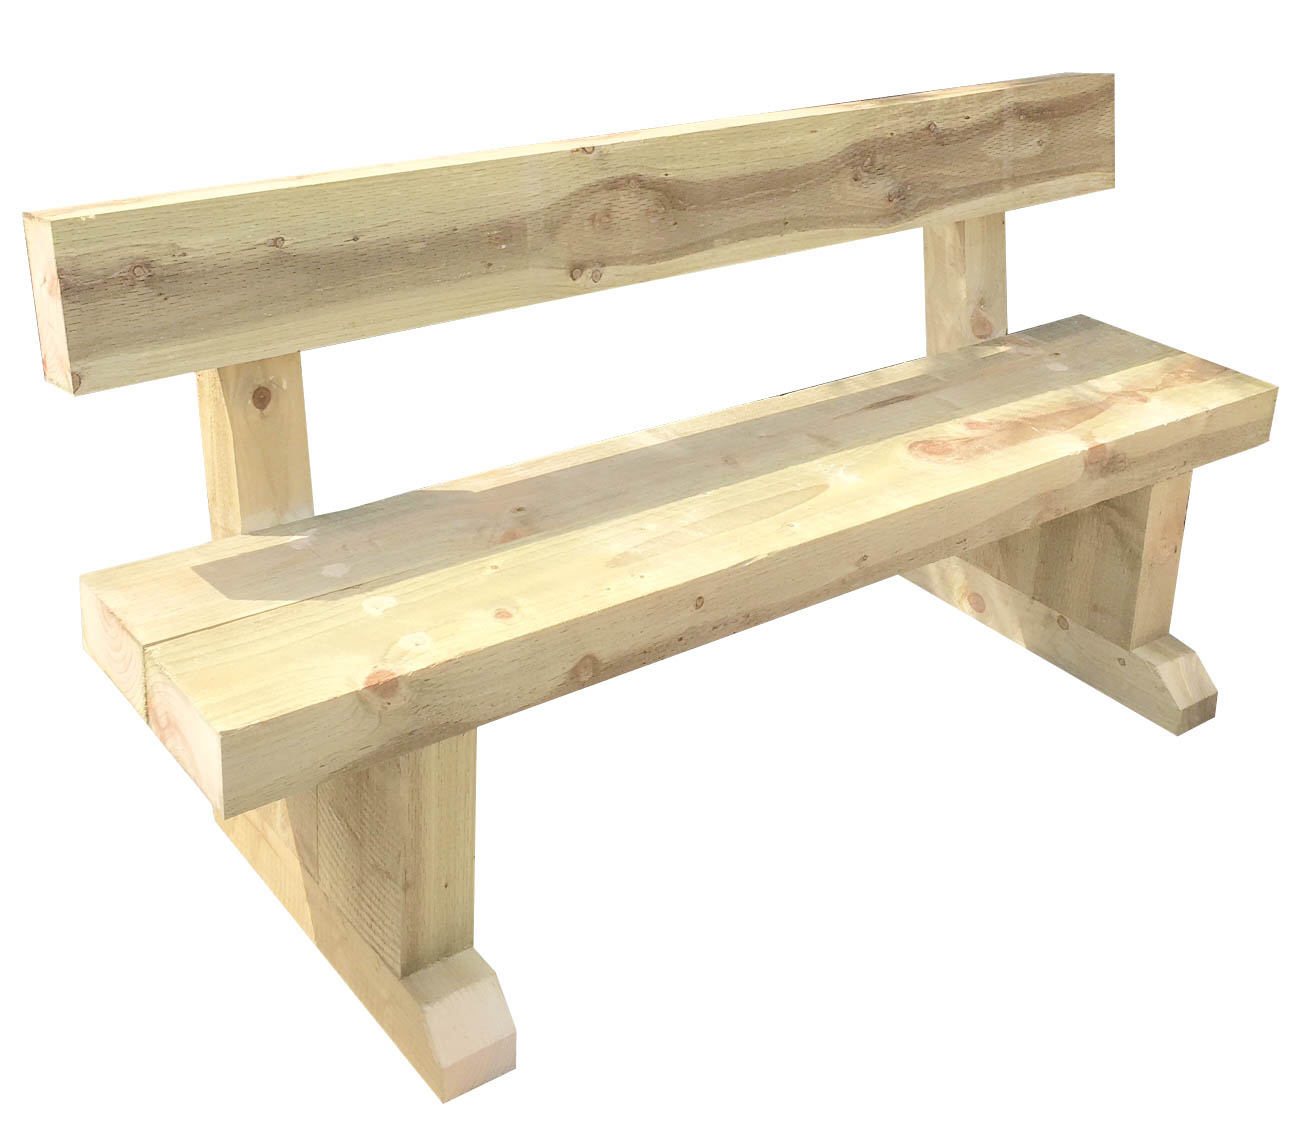 Red Oak Kitchen Table, Welcome To Mst Home Improvements We Offer A Variety Of Services Decking Patios Artificial Grass Fencing Fascias Guttering Chunky Sleeper Garden Bench With Back Rest